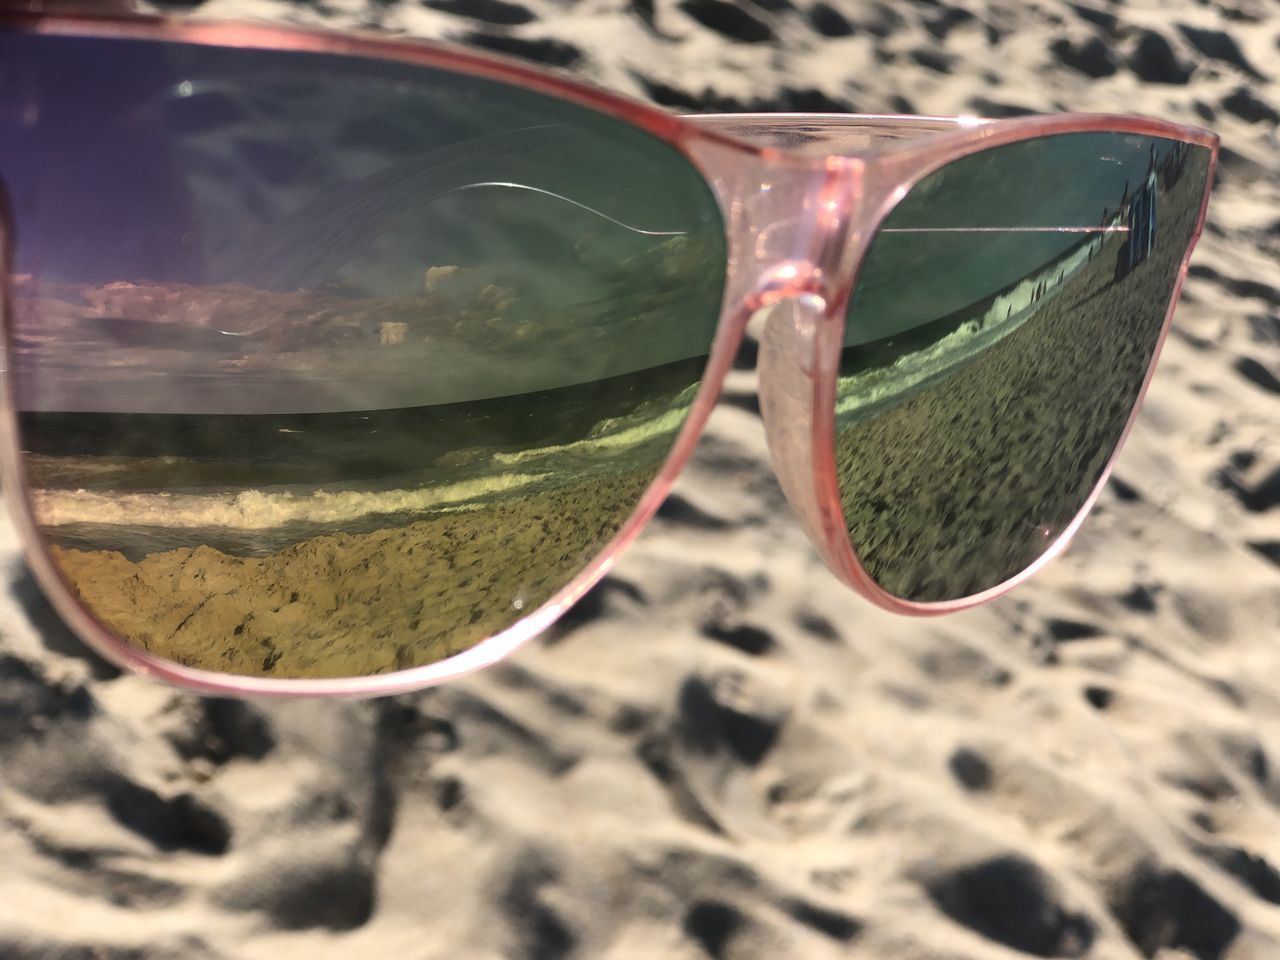 CLOSE-UP OF SUNGLASSES ON GLASS LAND